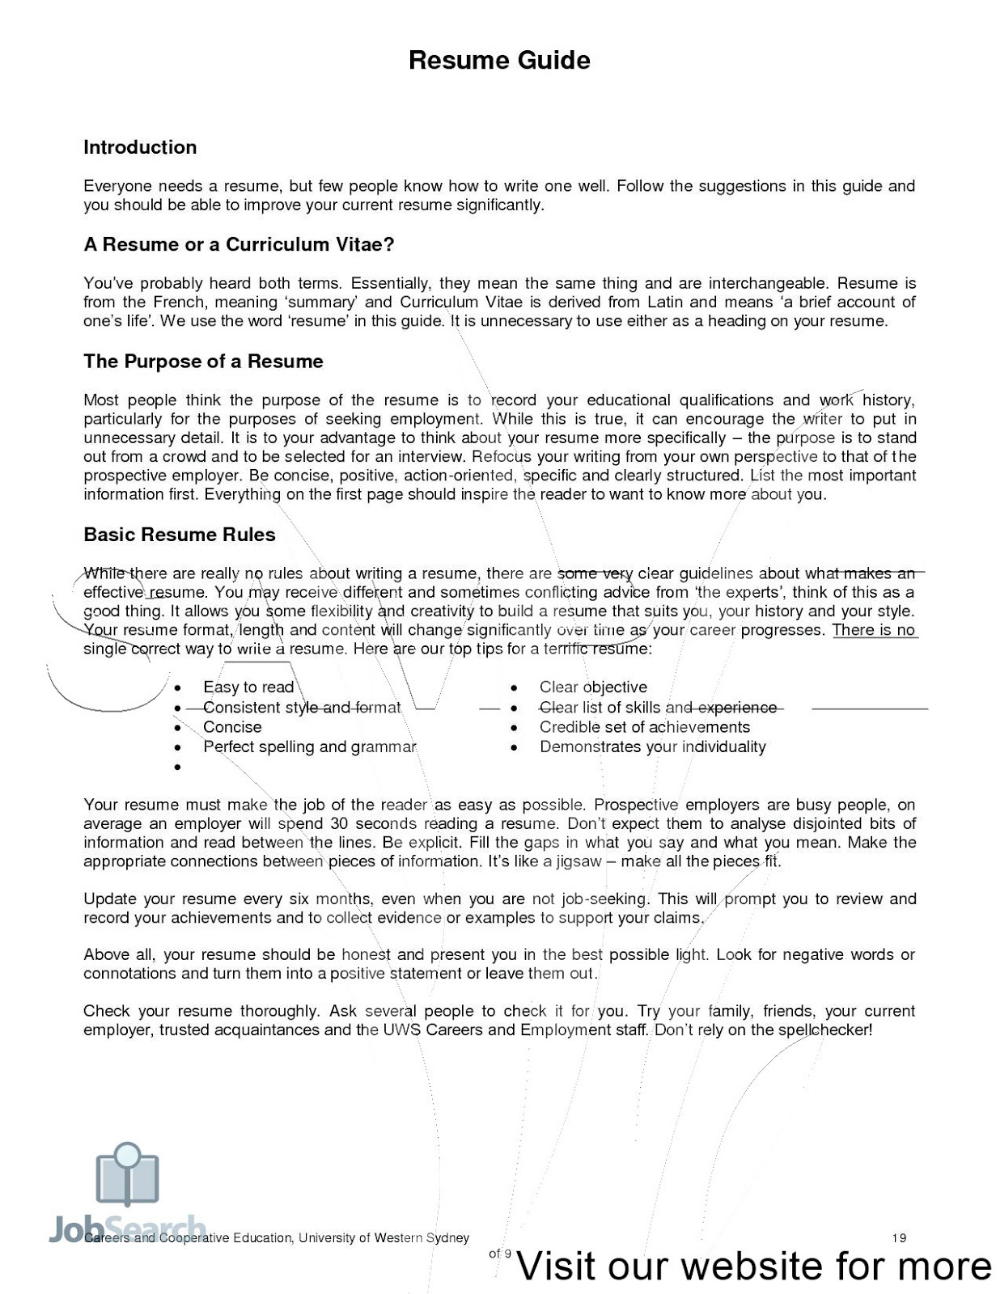 Making Your First Resume 2020 Making Your First Resume